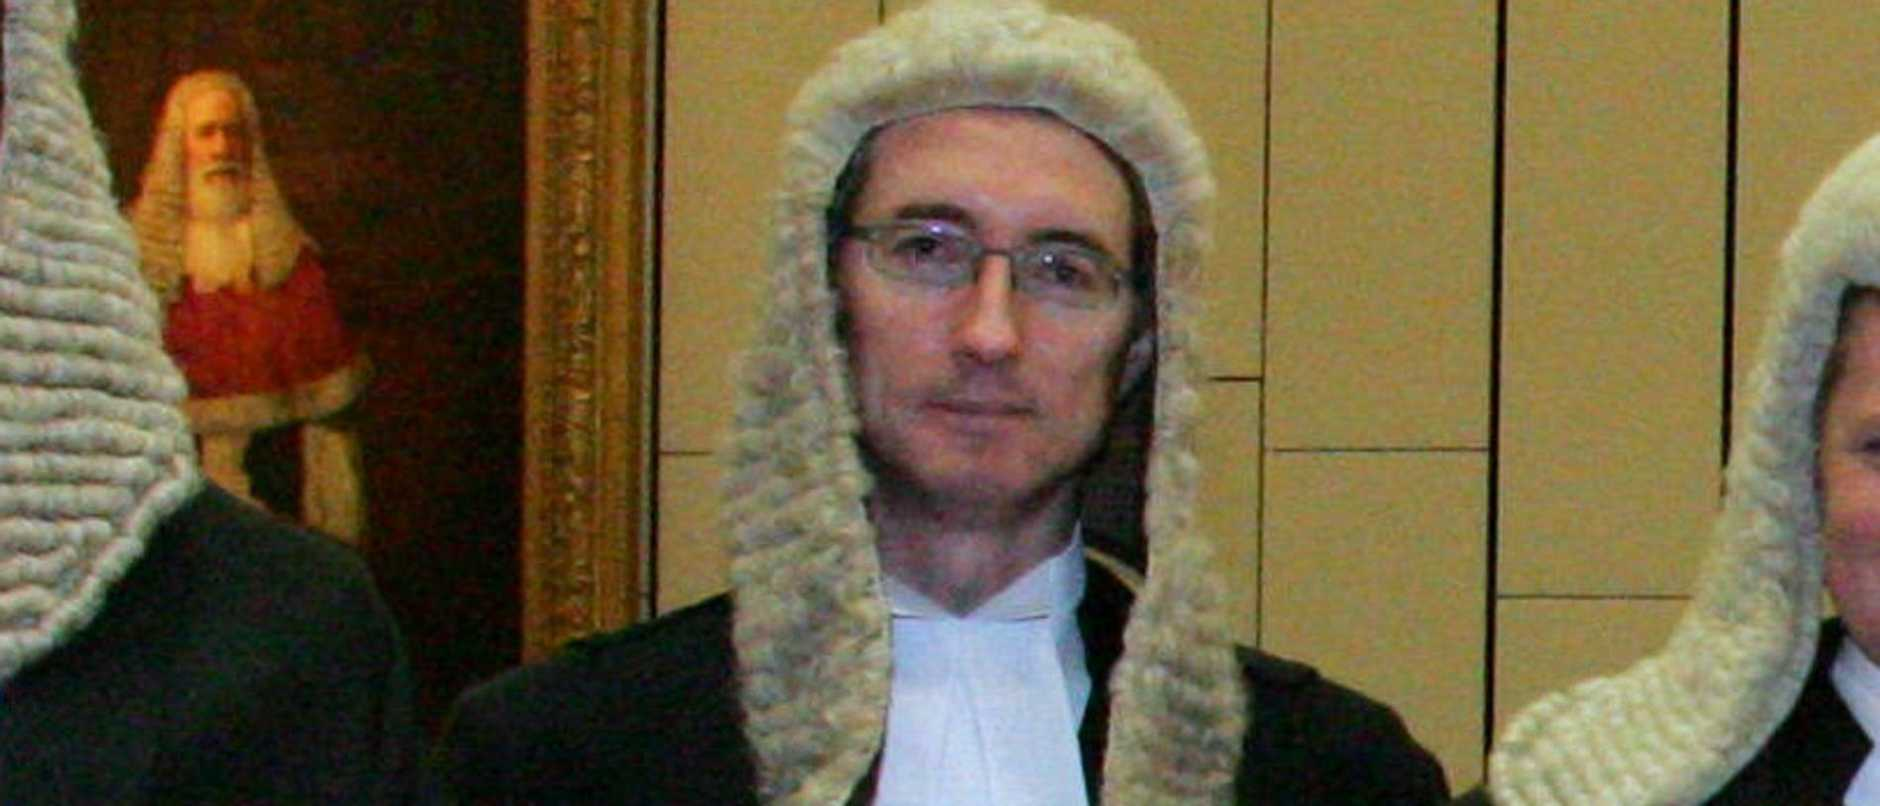 A new Chief Judge of the Queensland District Court has been appointed following today's retirement of Chief Judge Kerry O'Brien.